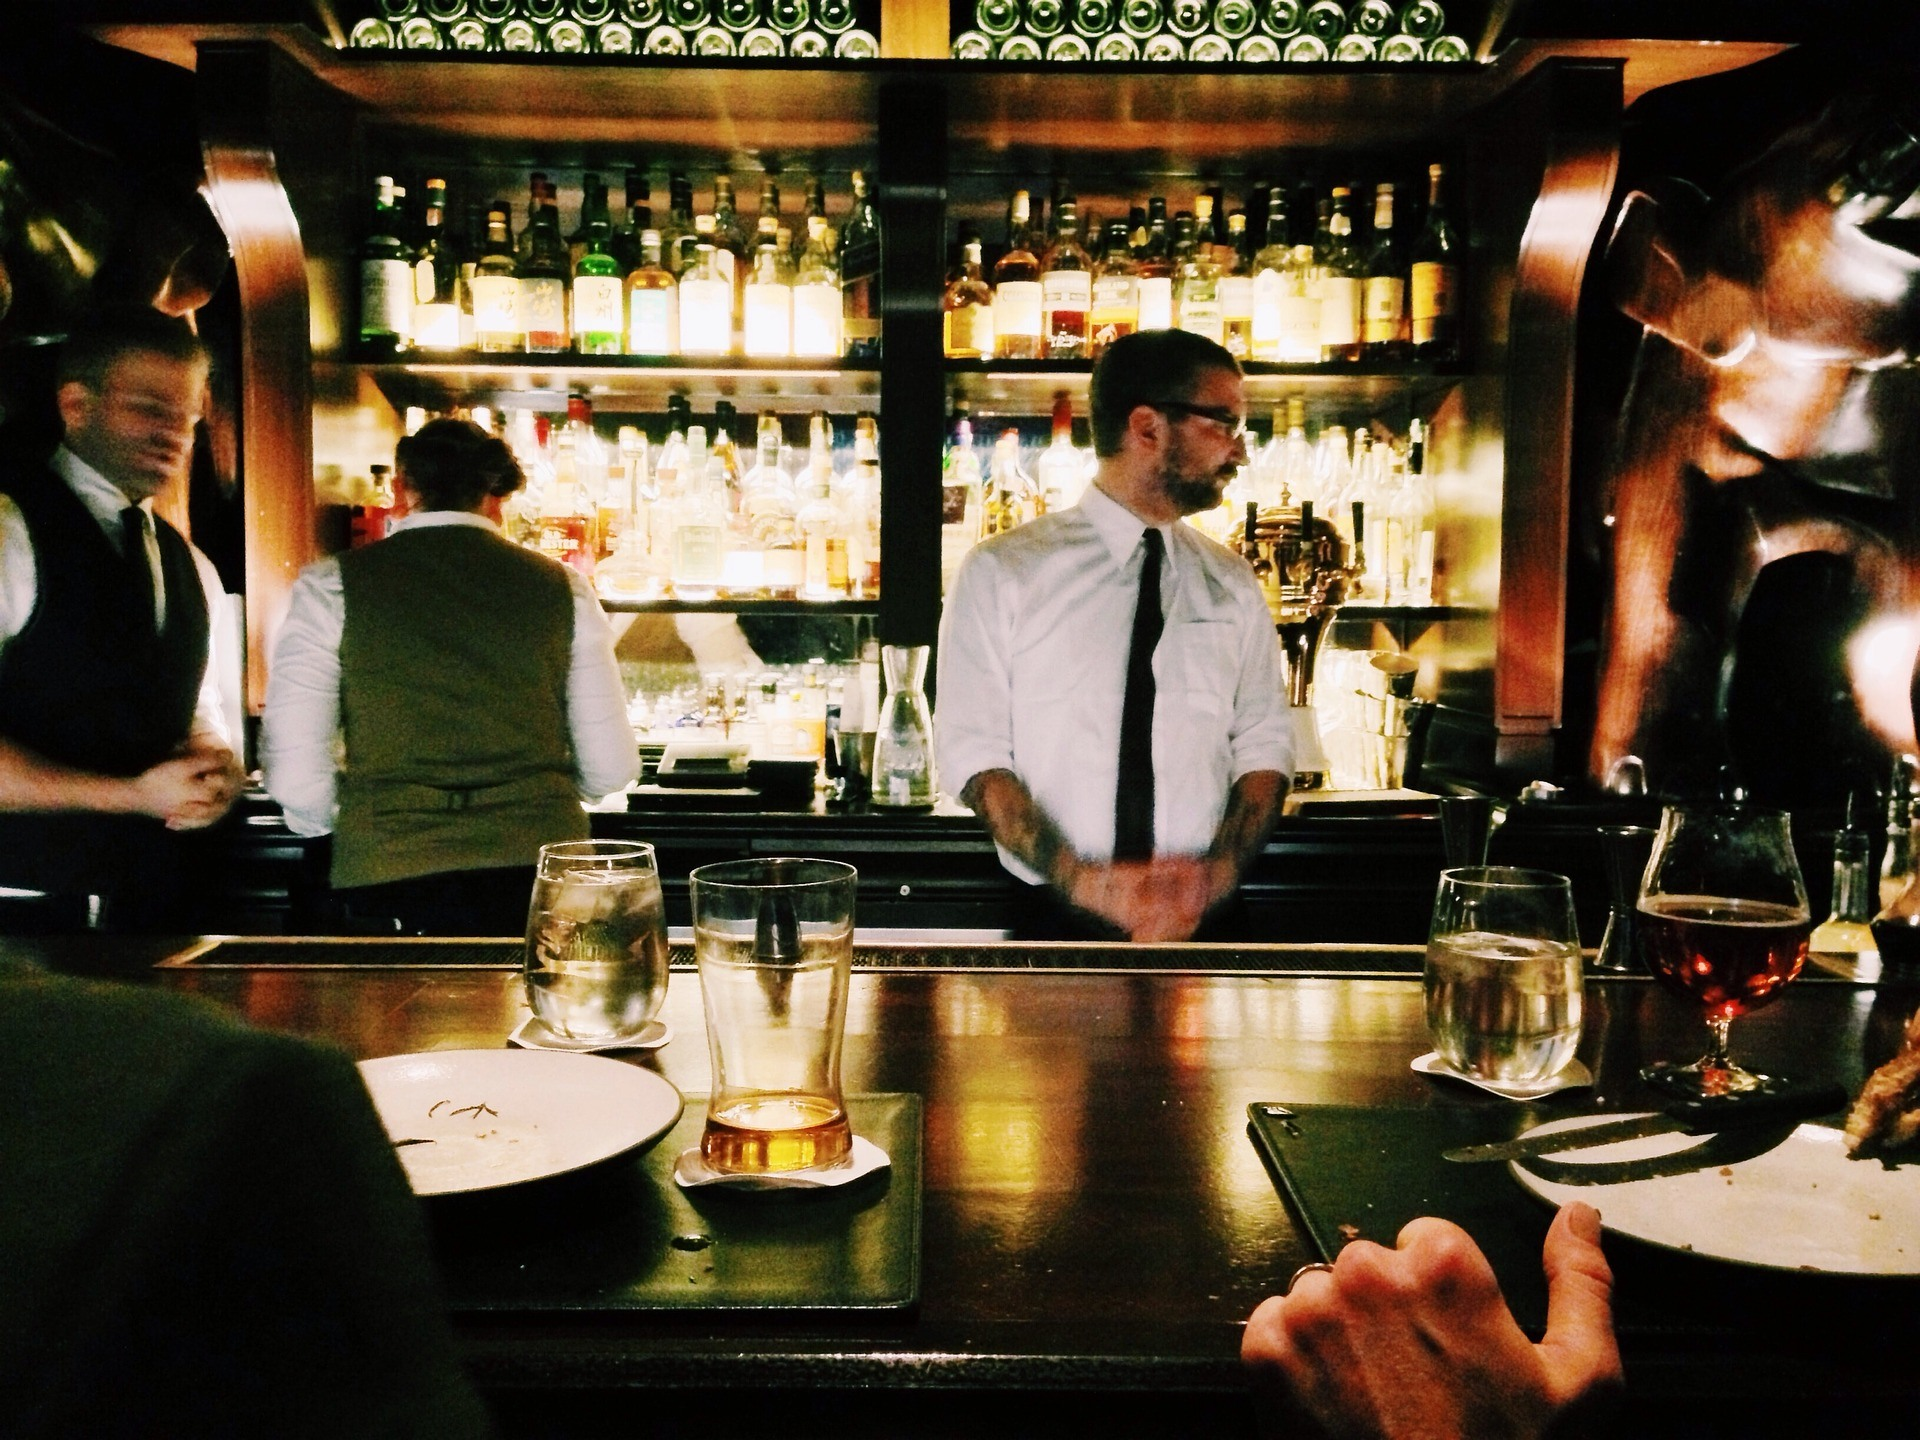 How much should bar staff be paid?